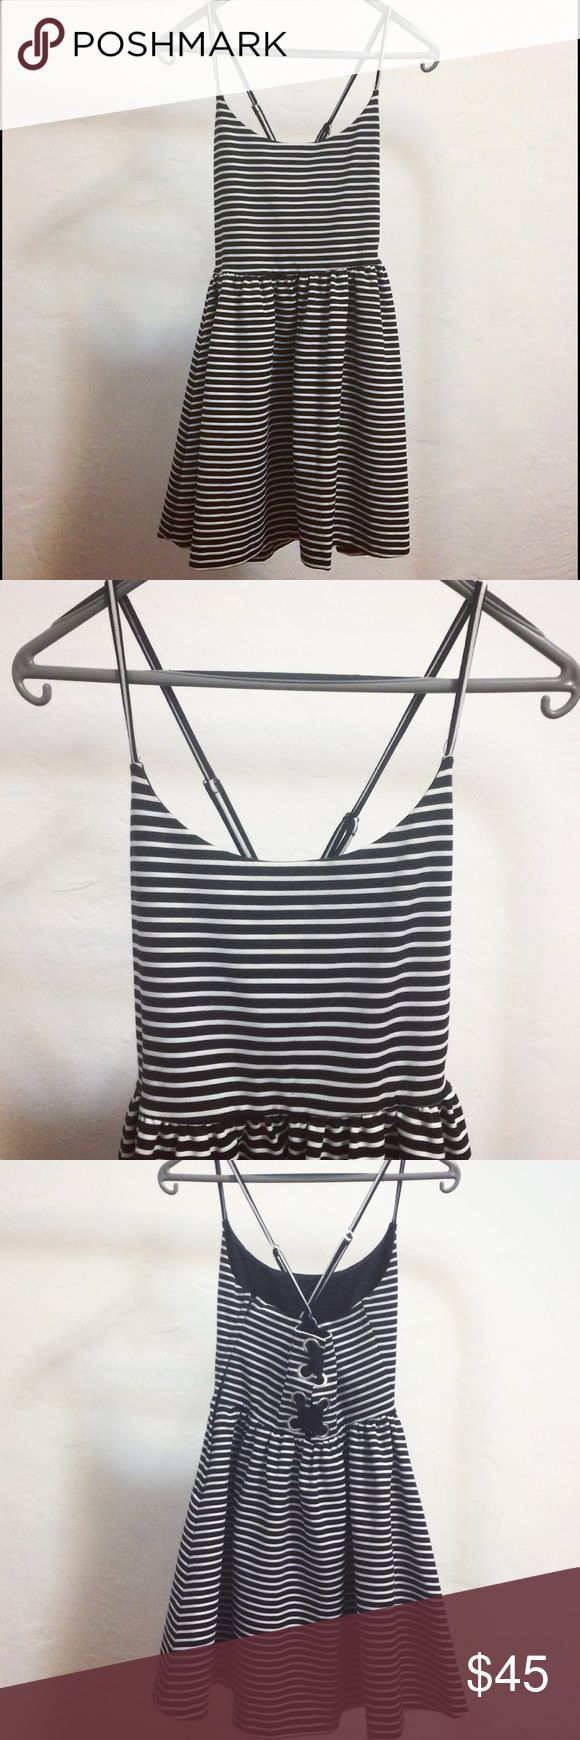 B&W Guess dress Guess Los Angeles dress size 6 ••• great condition ••• crossback straps that are adjustable ••• super cute dress you can wear for multiple occasions (would go perfect with a black sun hat and some dark shades) 🕶 Guess Dresses Mini